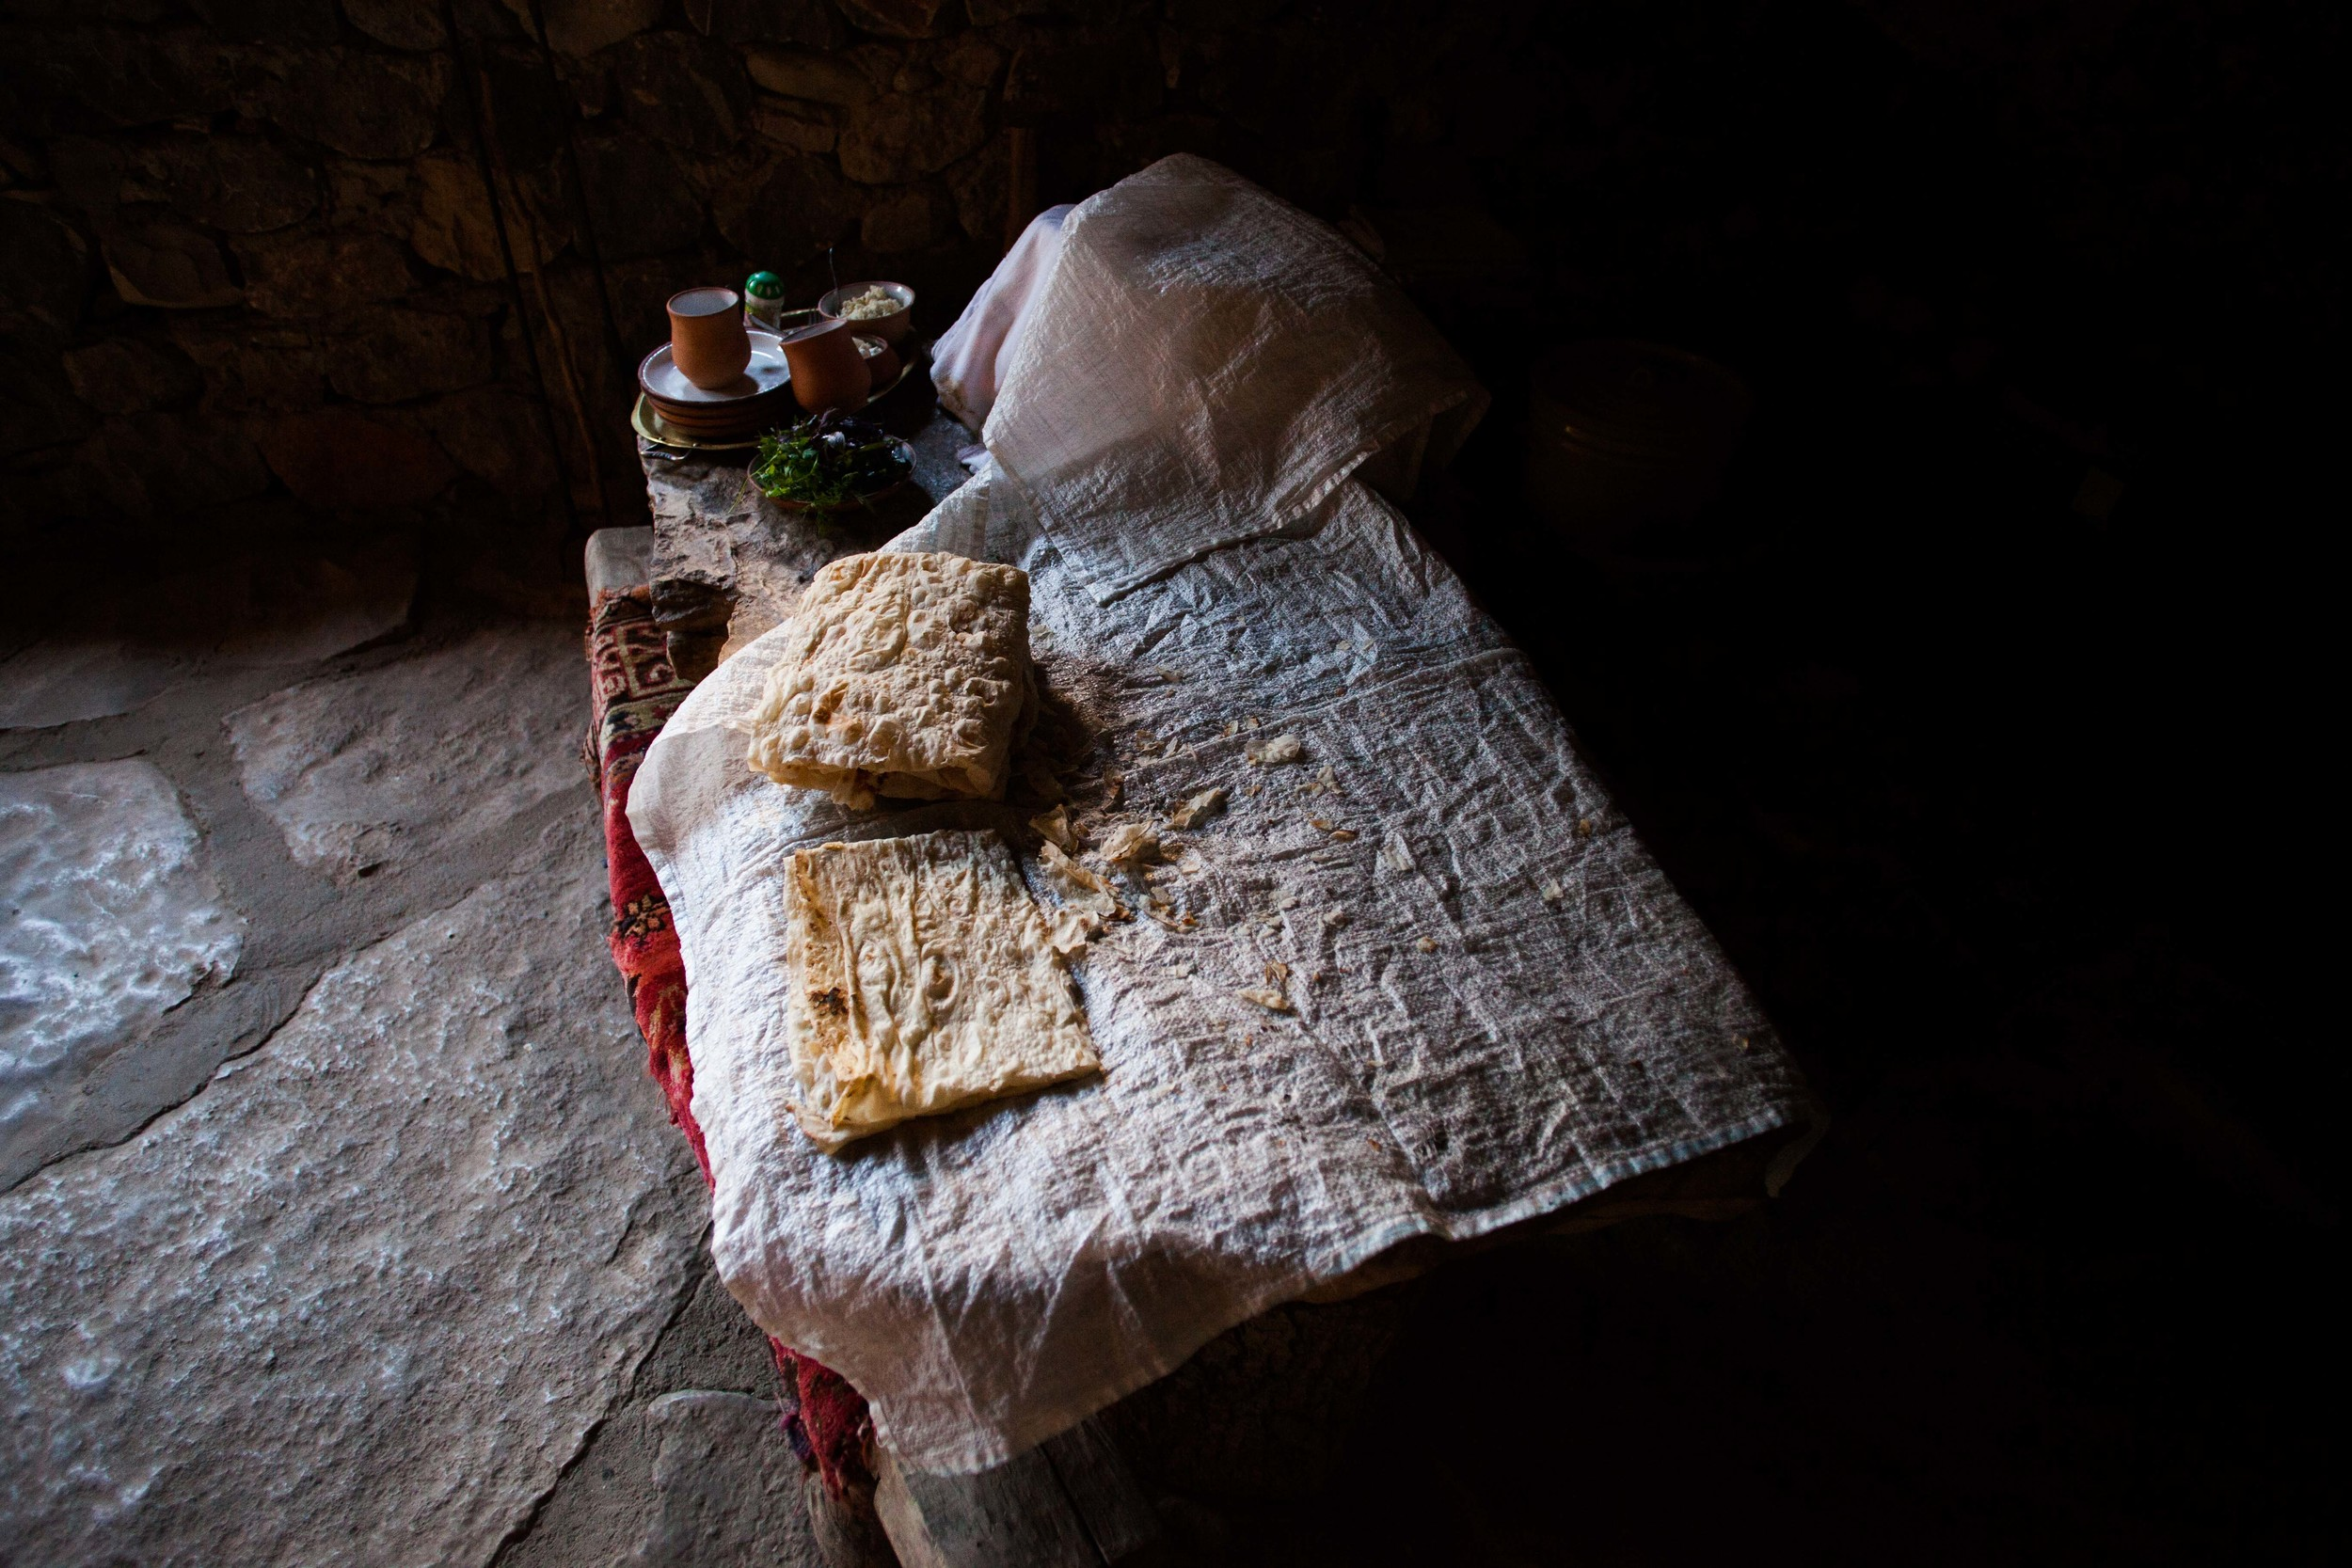 Fresh-baked lavash, Armenia's most popular bread, cools down before being served at Vardges's Cave Restaurant in Noravank.